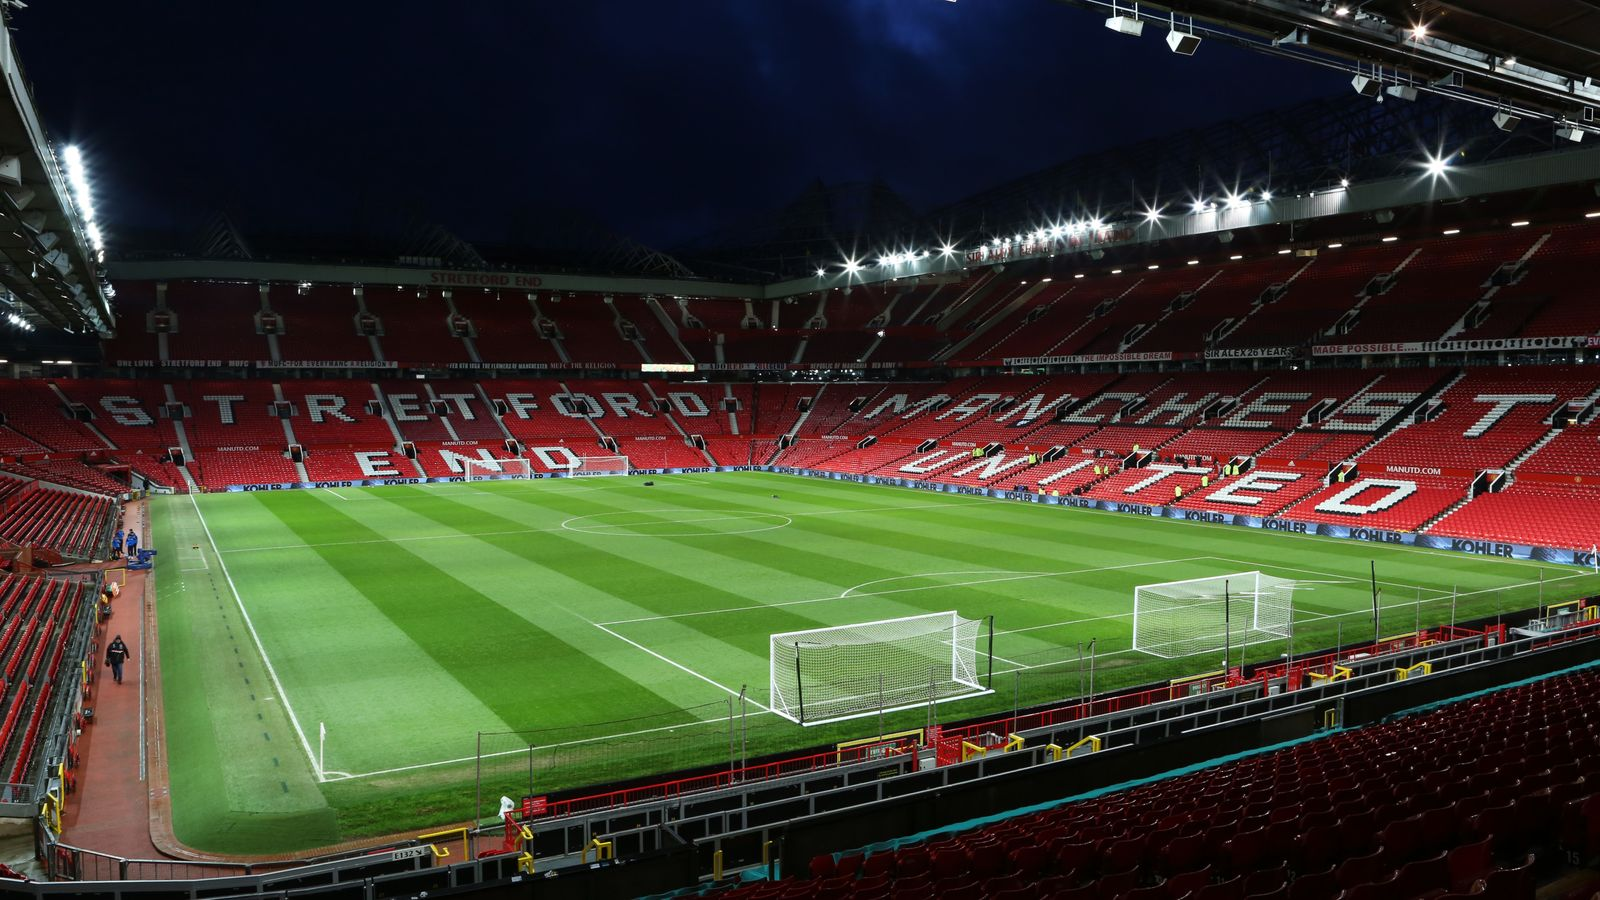 The Best Manchester United Stadium Wallpaper